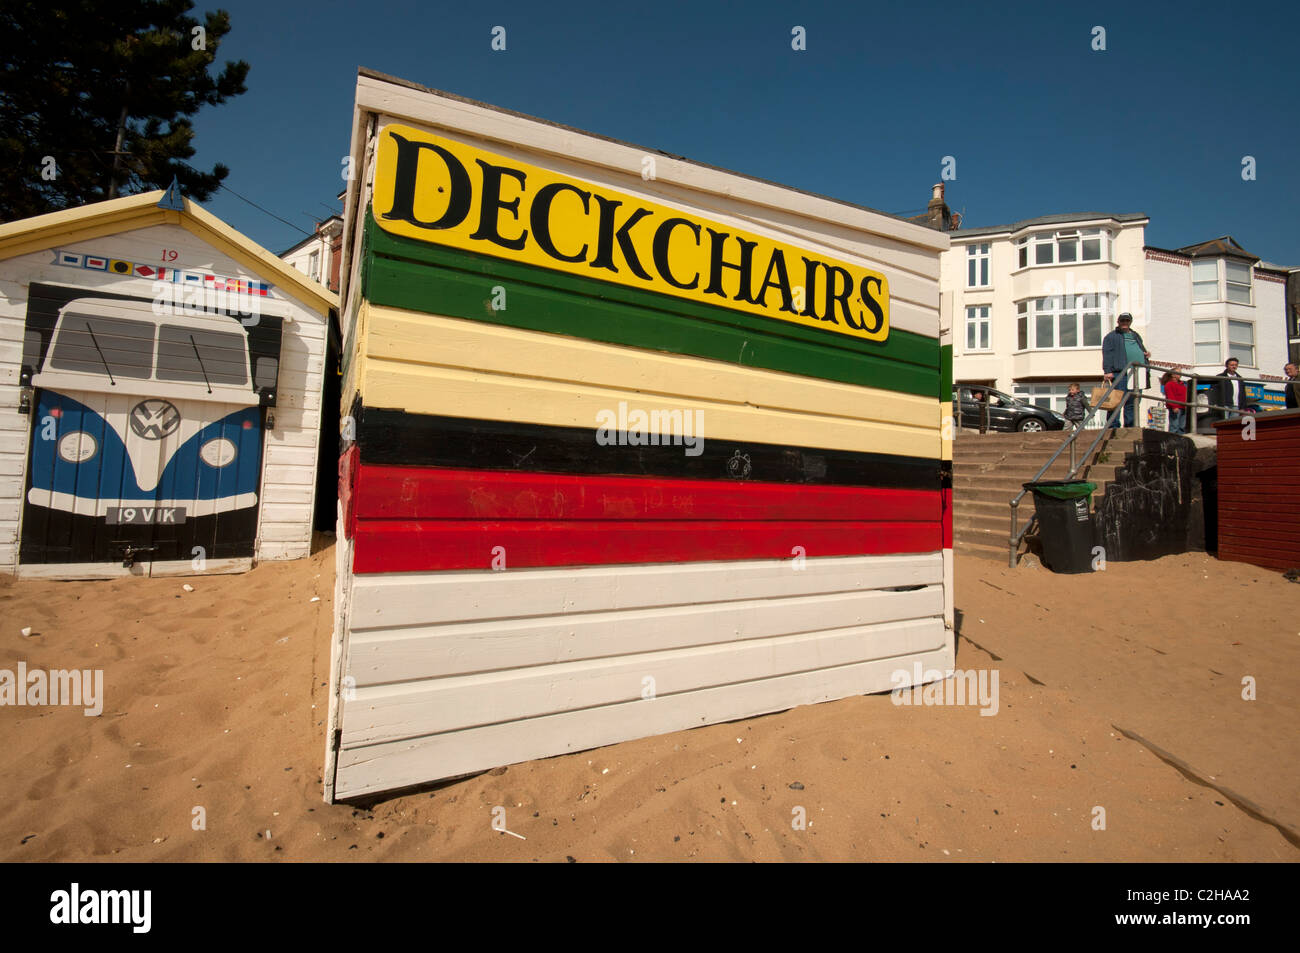 Beach huts with deck chairs for rental at harbour broadstairs Kent UK - Stock Image